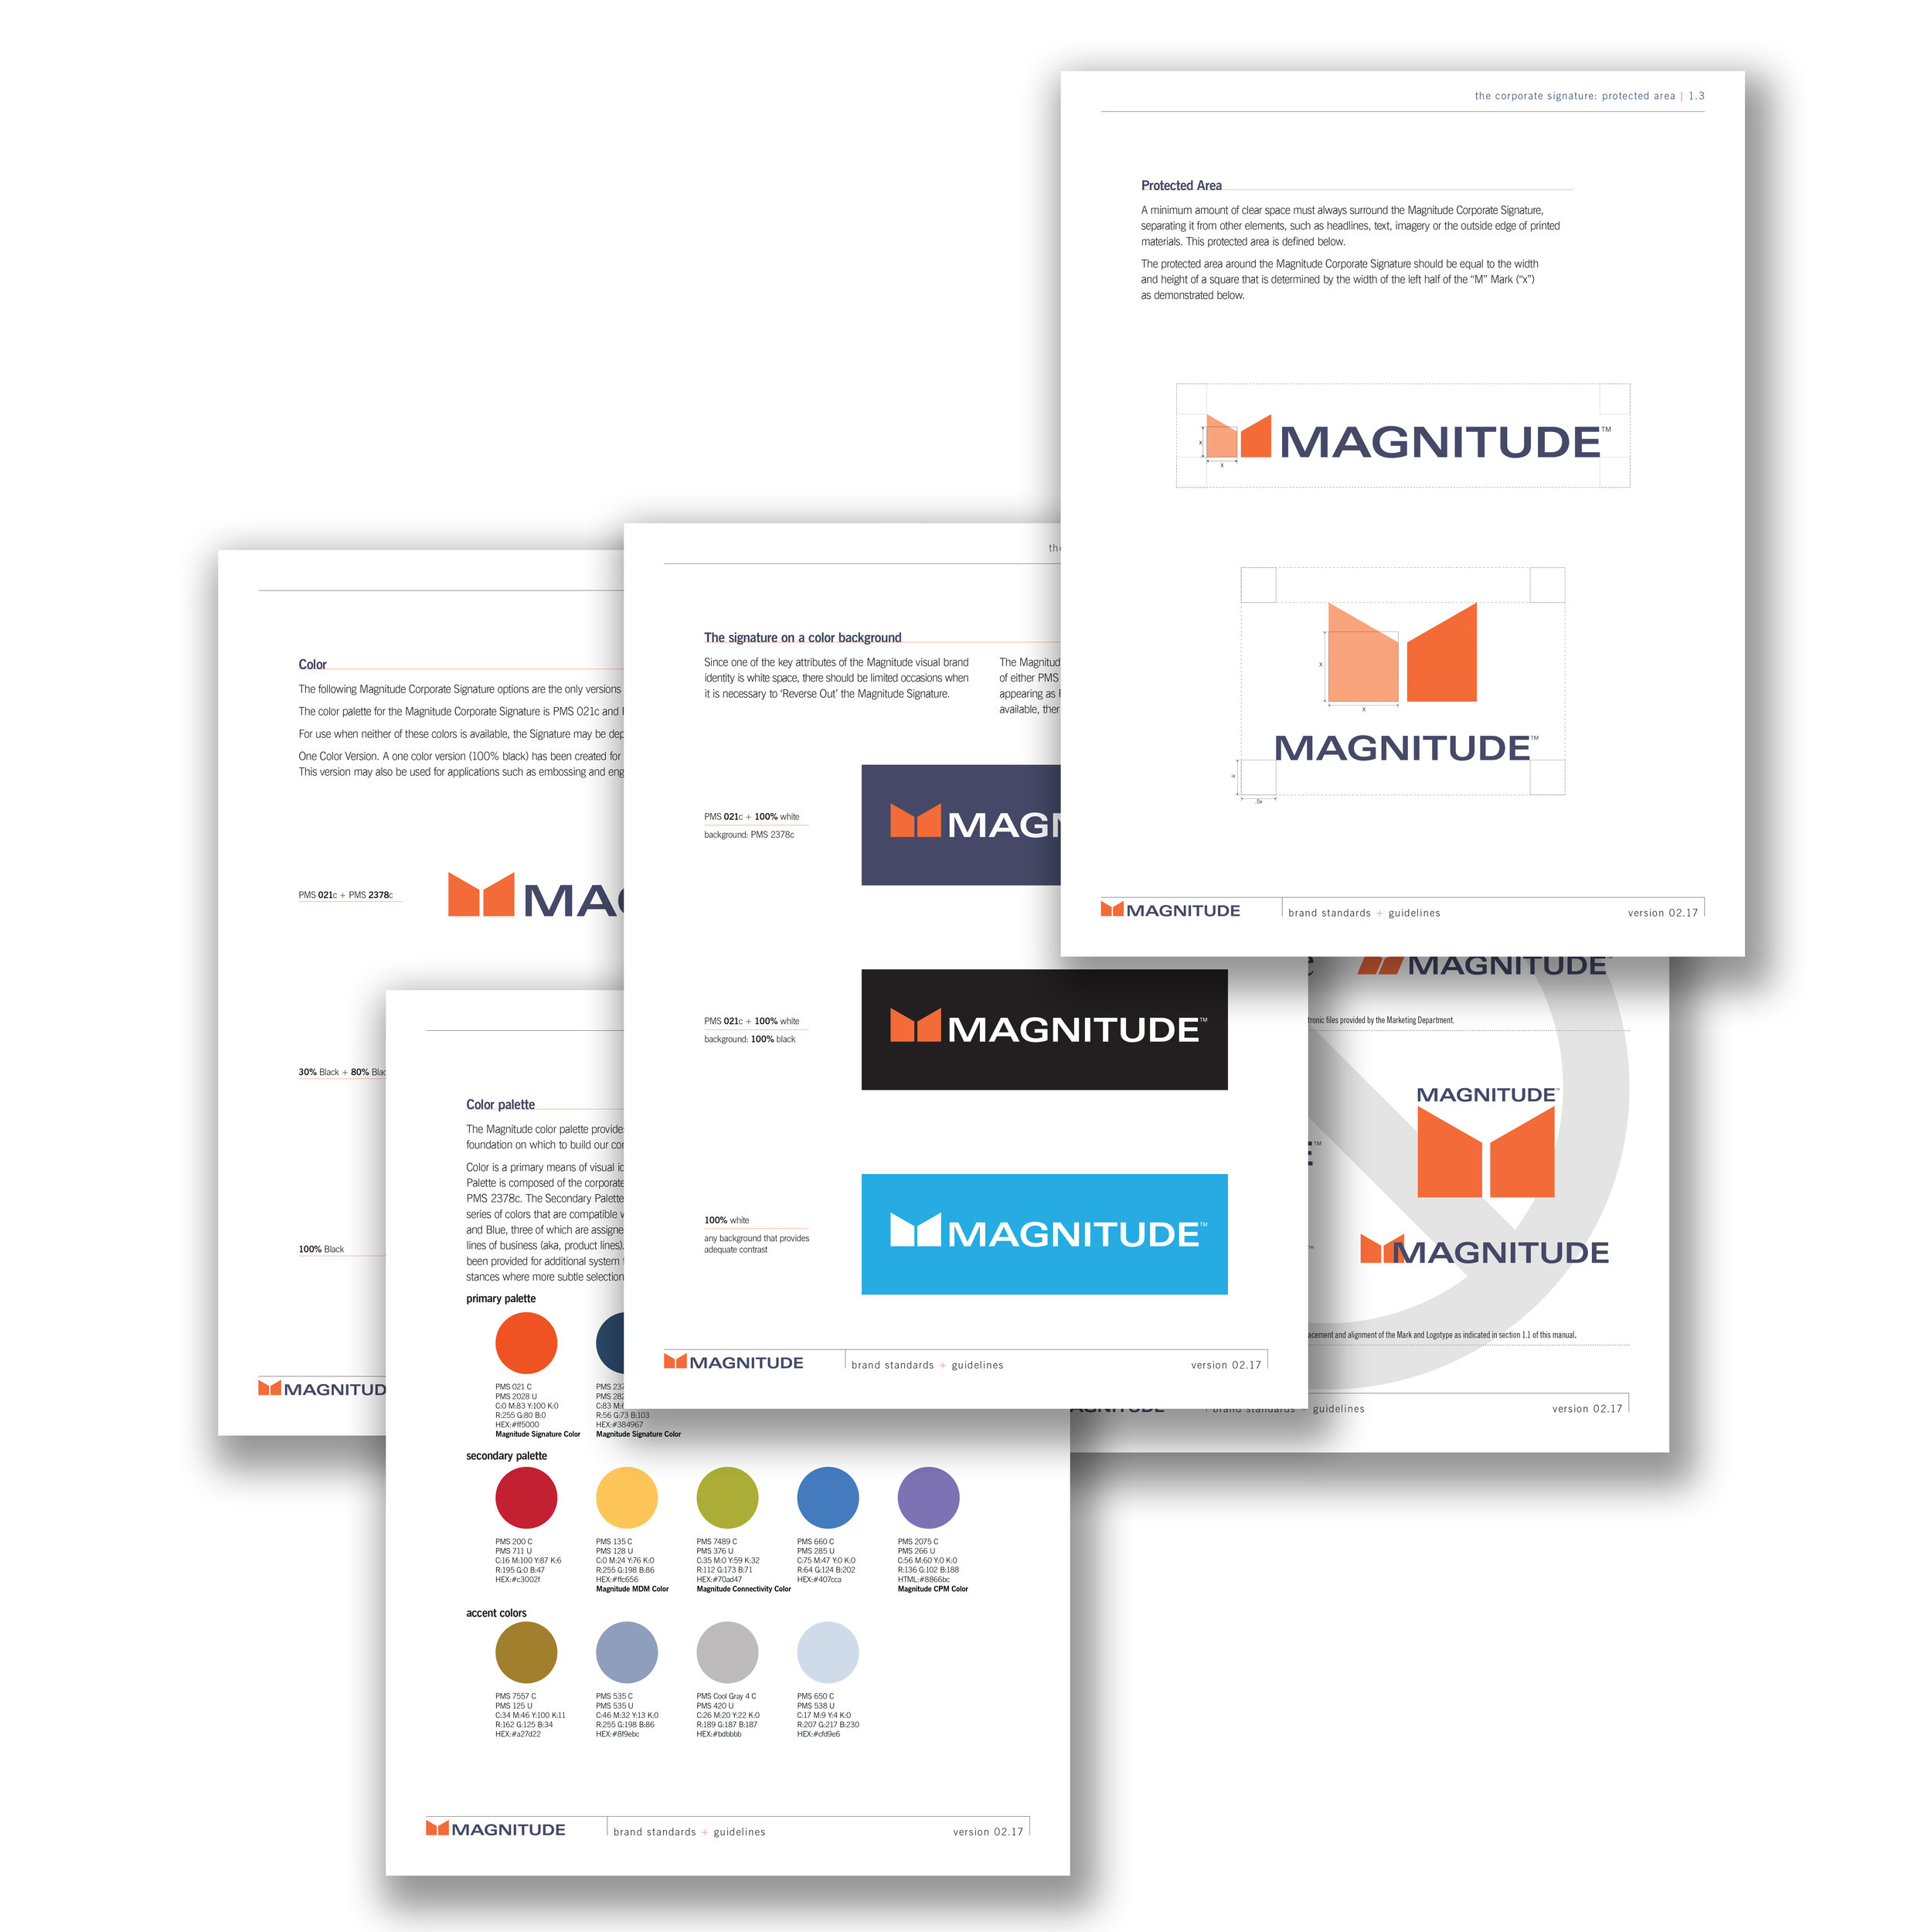 Magnitude Software Brand Standards Manual